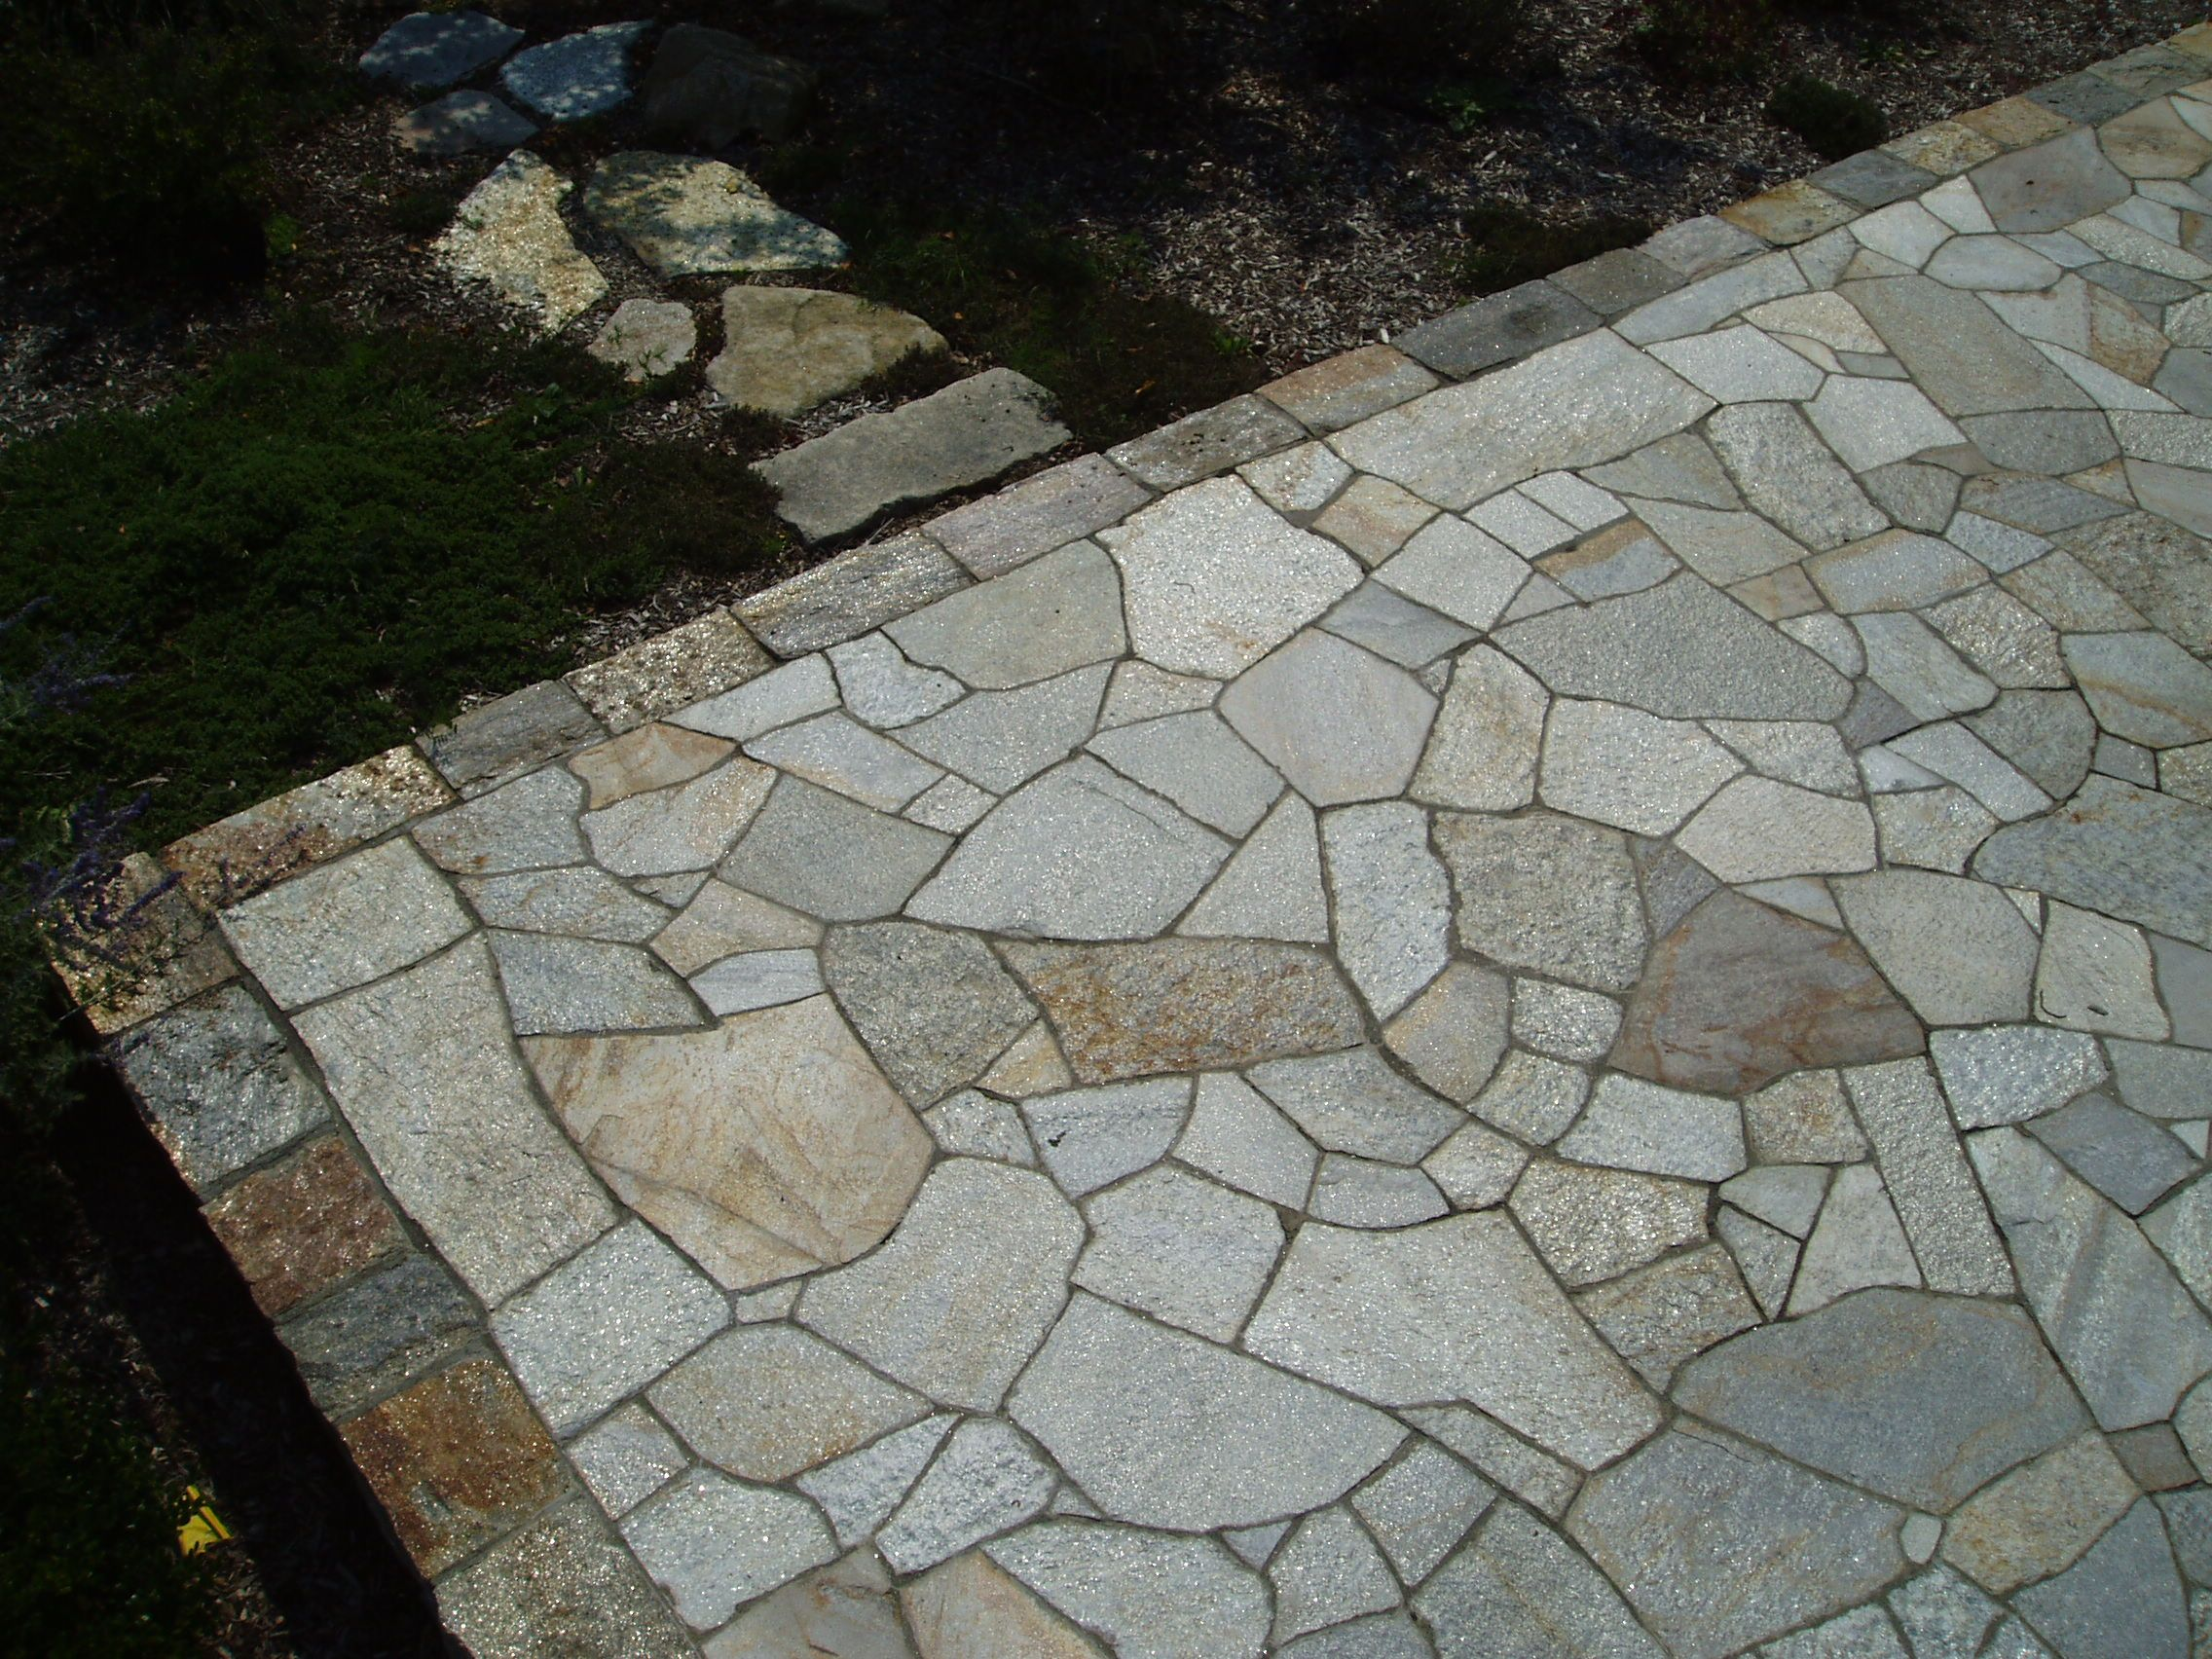 Flagstone Patio Mosaic Pattern Quartzite Stone Yard Garden - Flagstone patio patterns